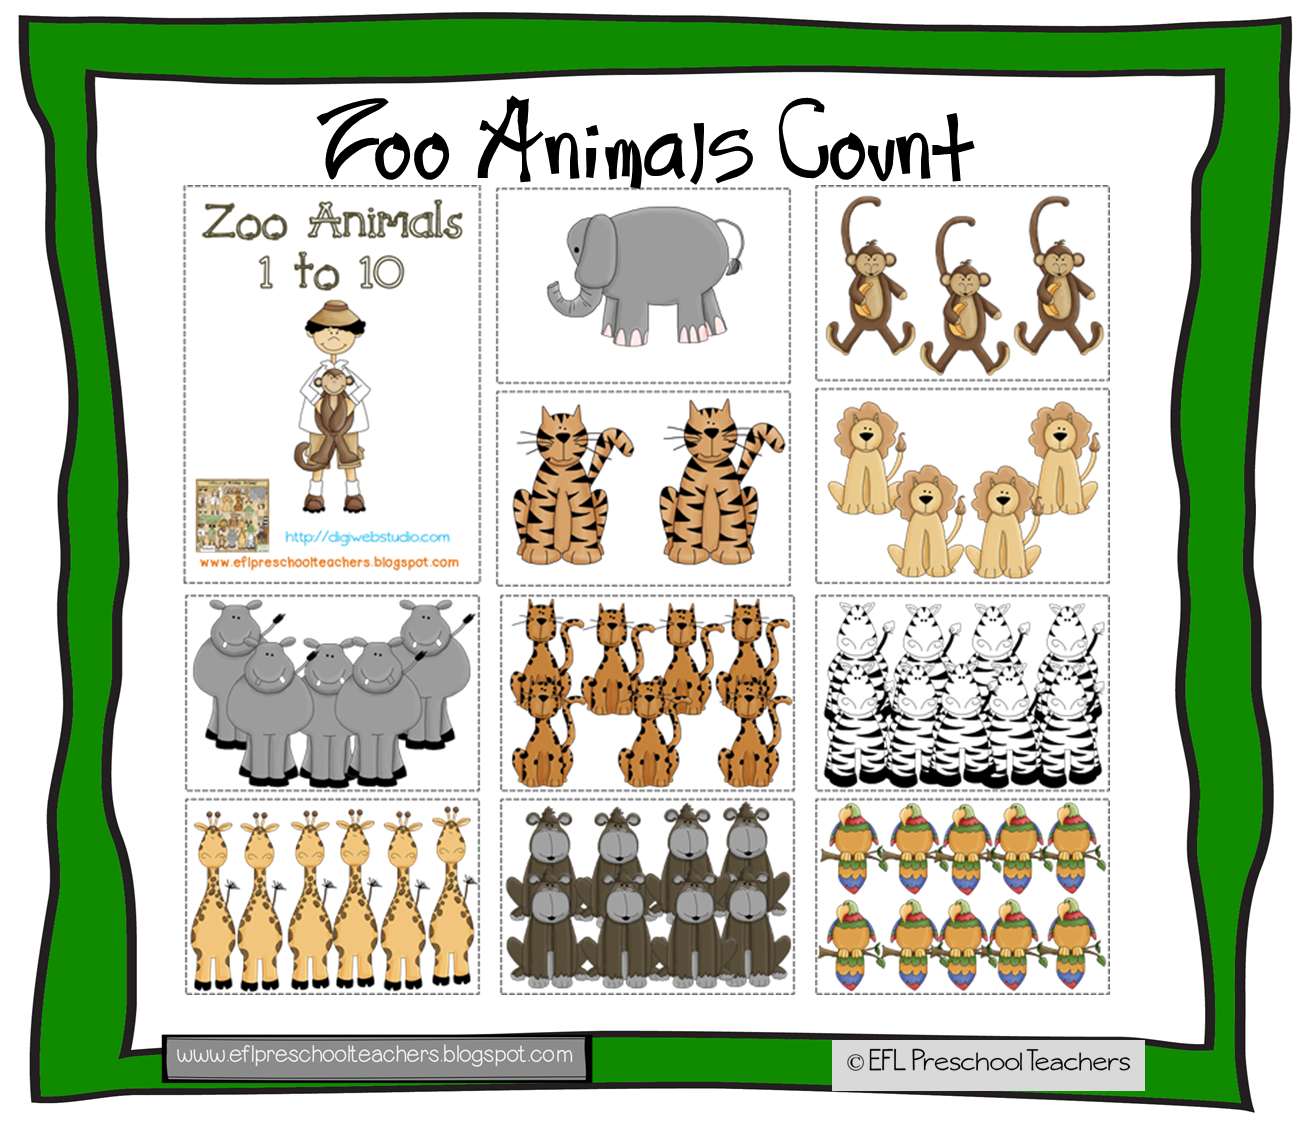 Esl Efl Preschool Teachers Zoo Or Jungle Theme For The